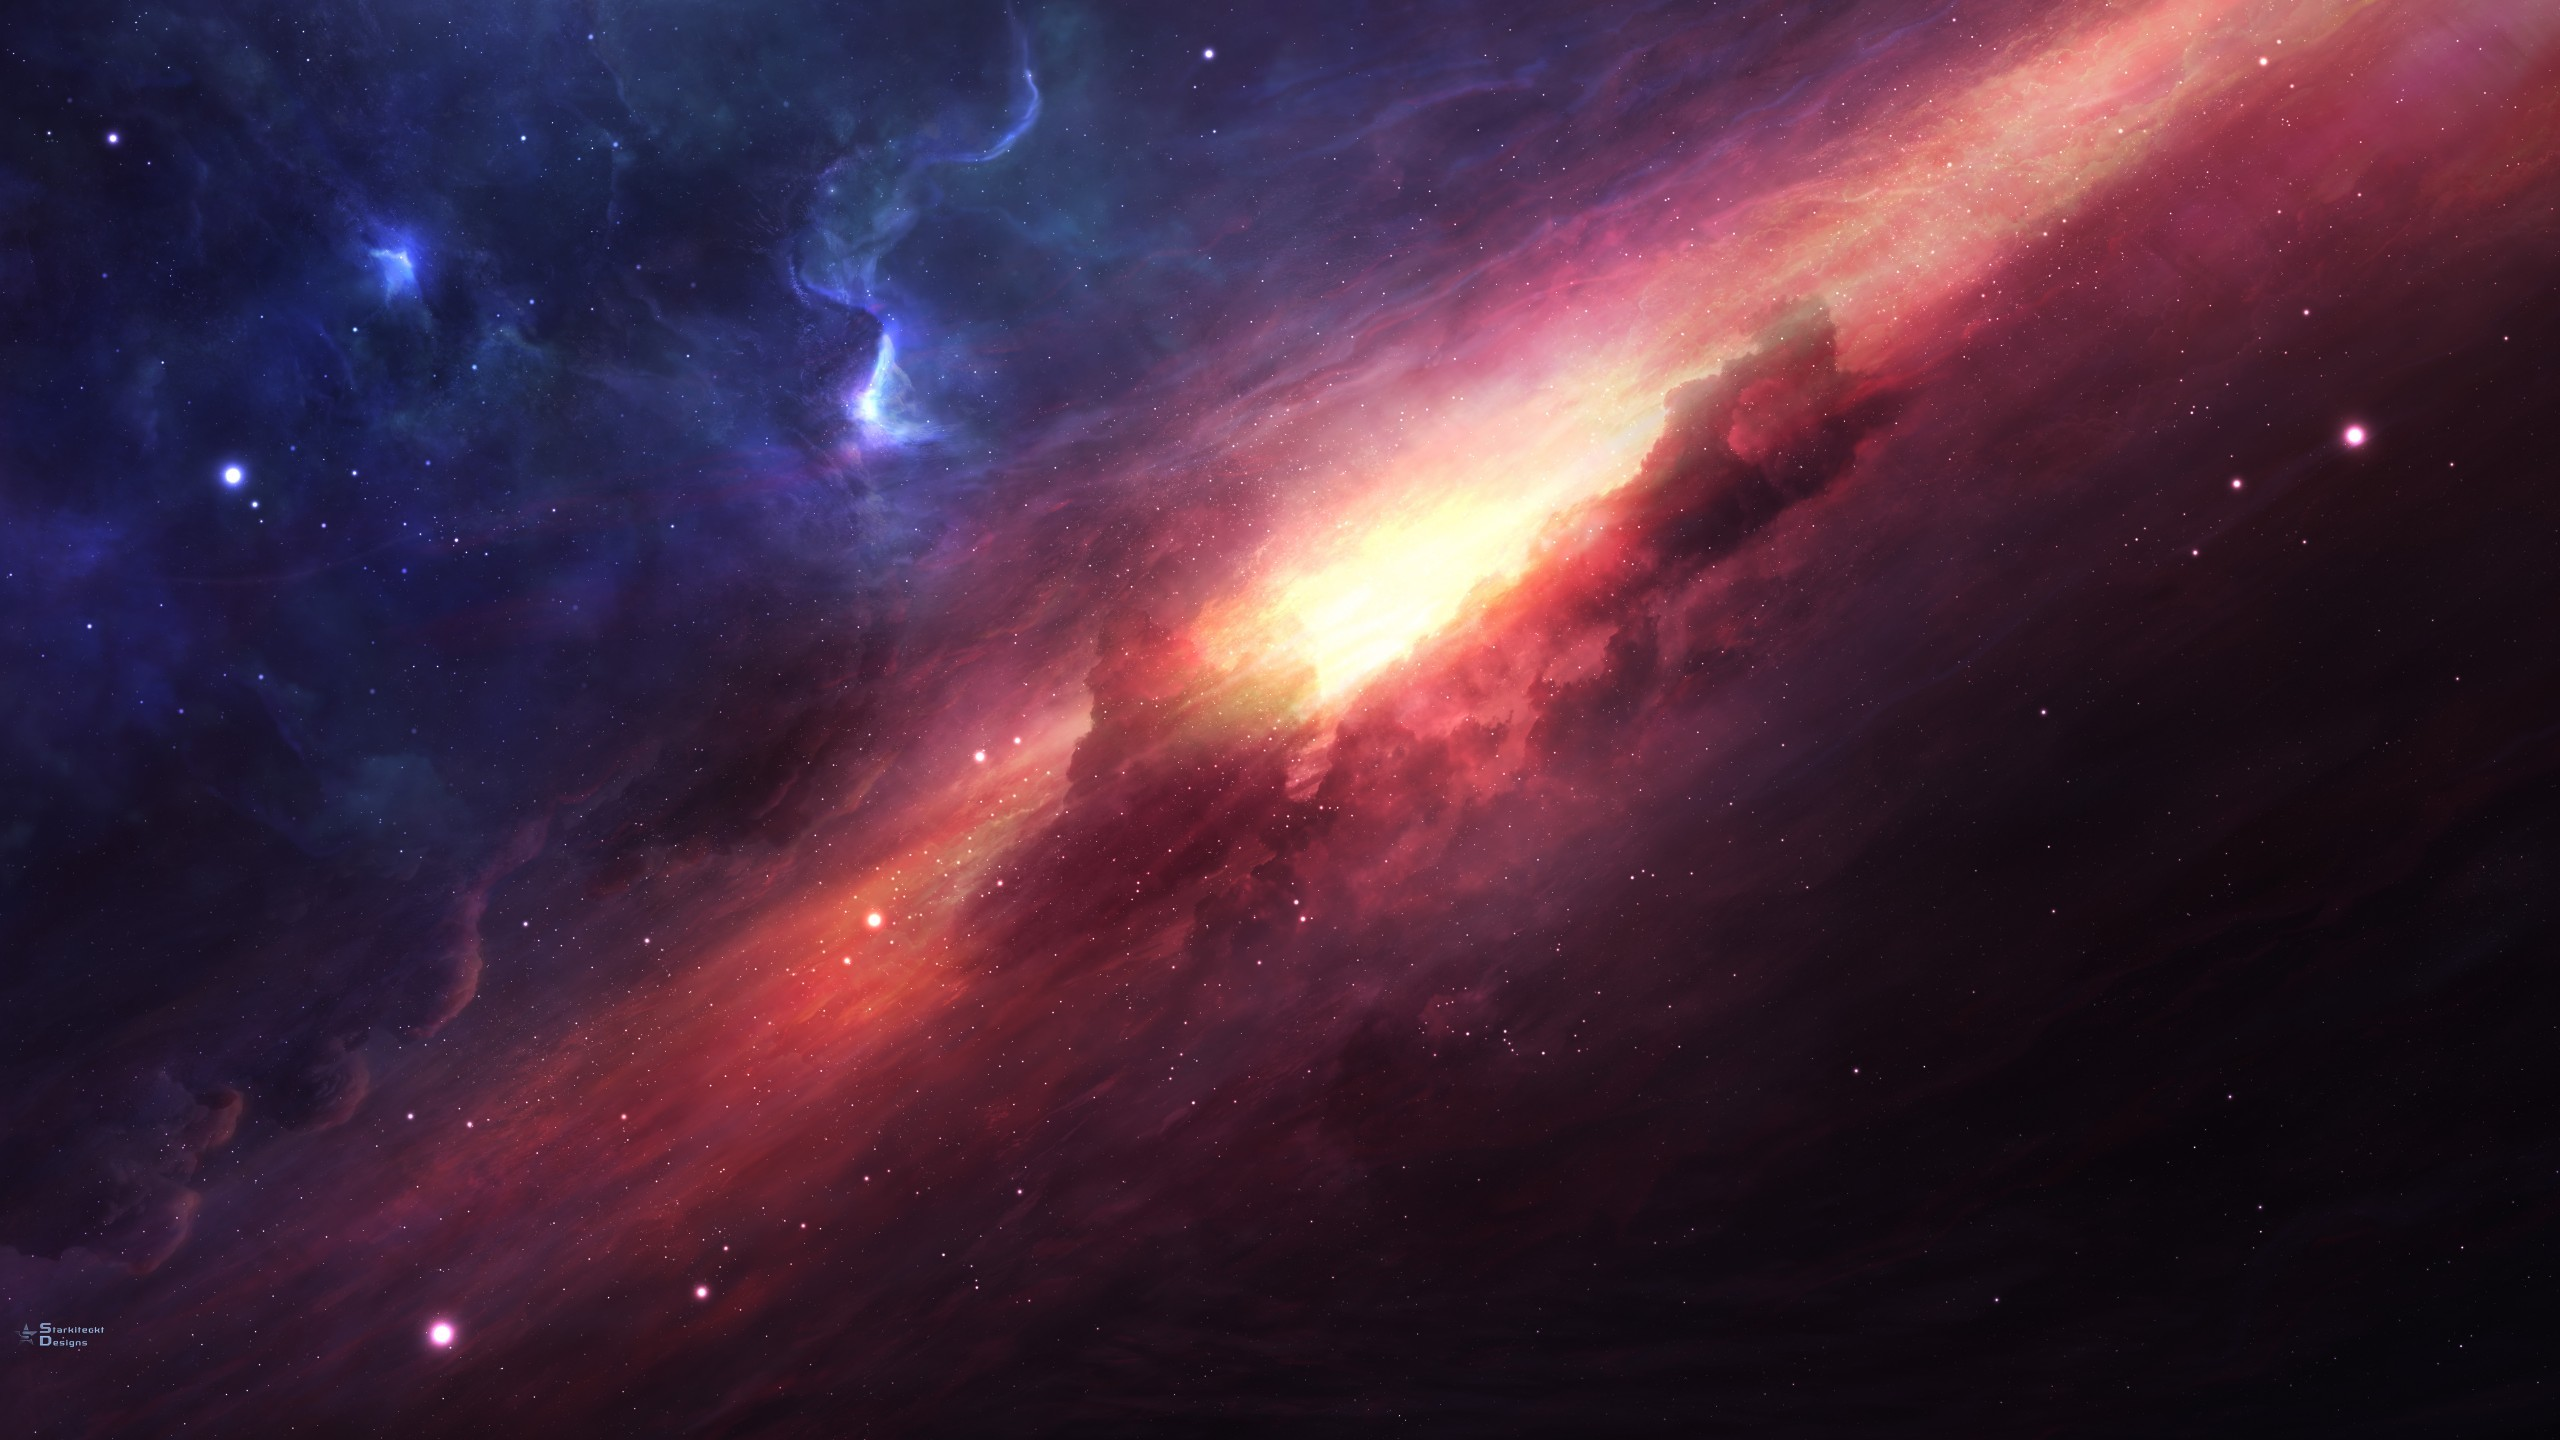 2560x1440 - 3840 X 2160 Space 14